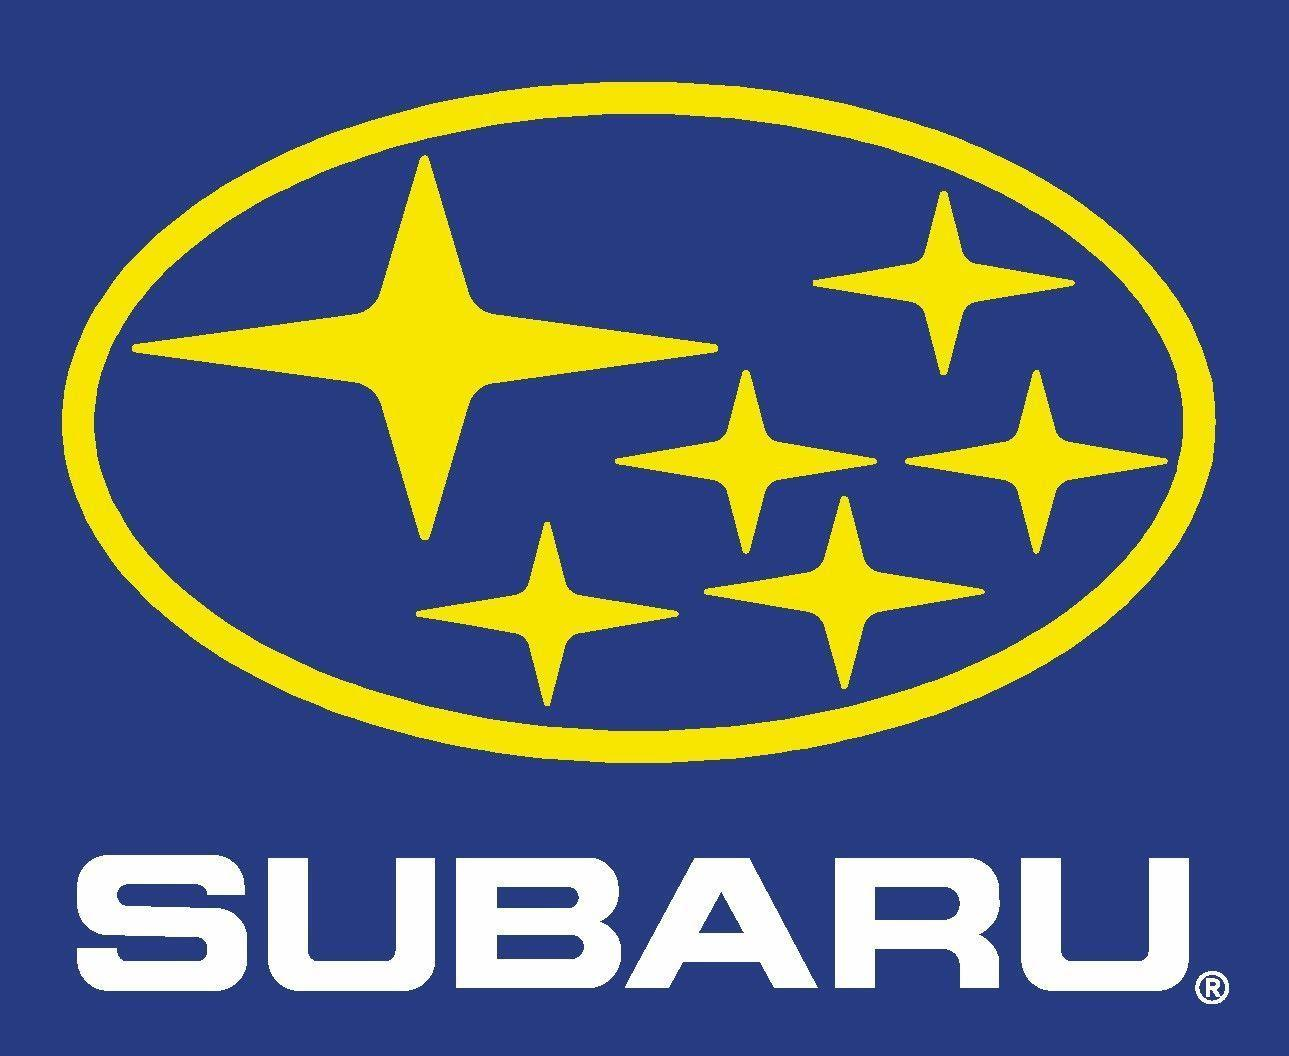 subaru logo wallpapers wallpaper cave